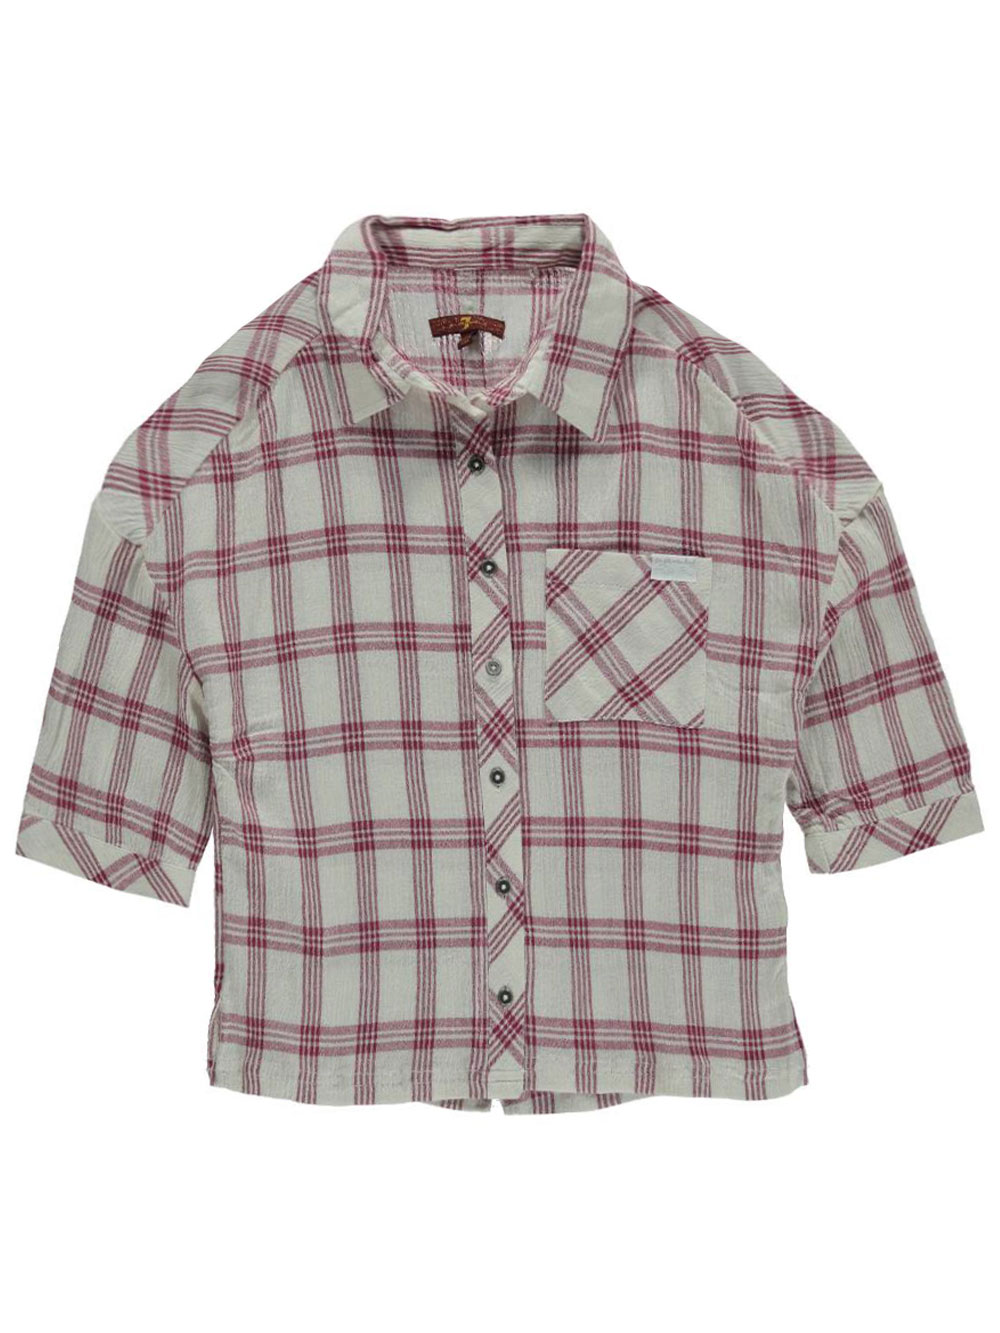 Image of 7 for All Mankind Big Girls Checked Gauze SS Shirt Sizes 7  16